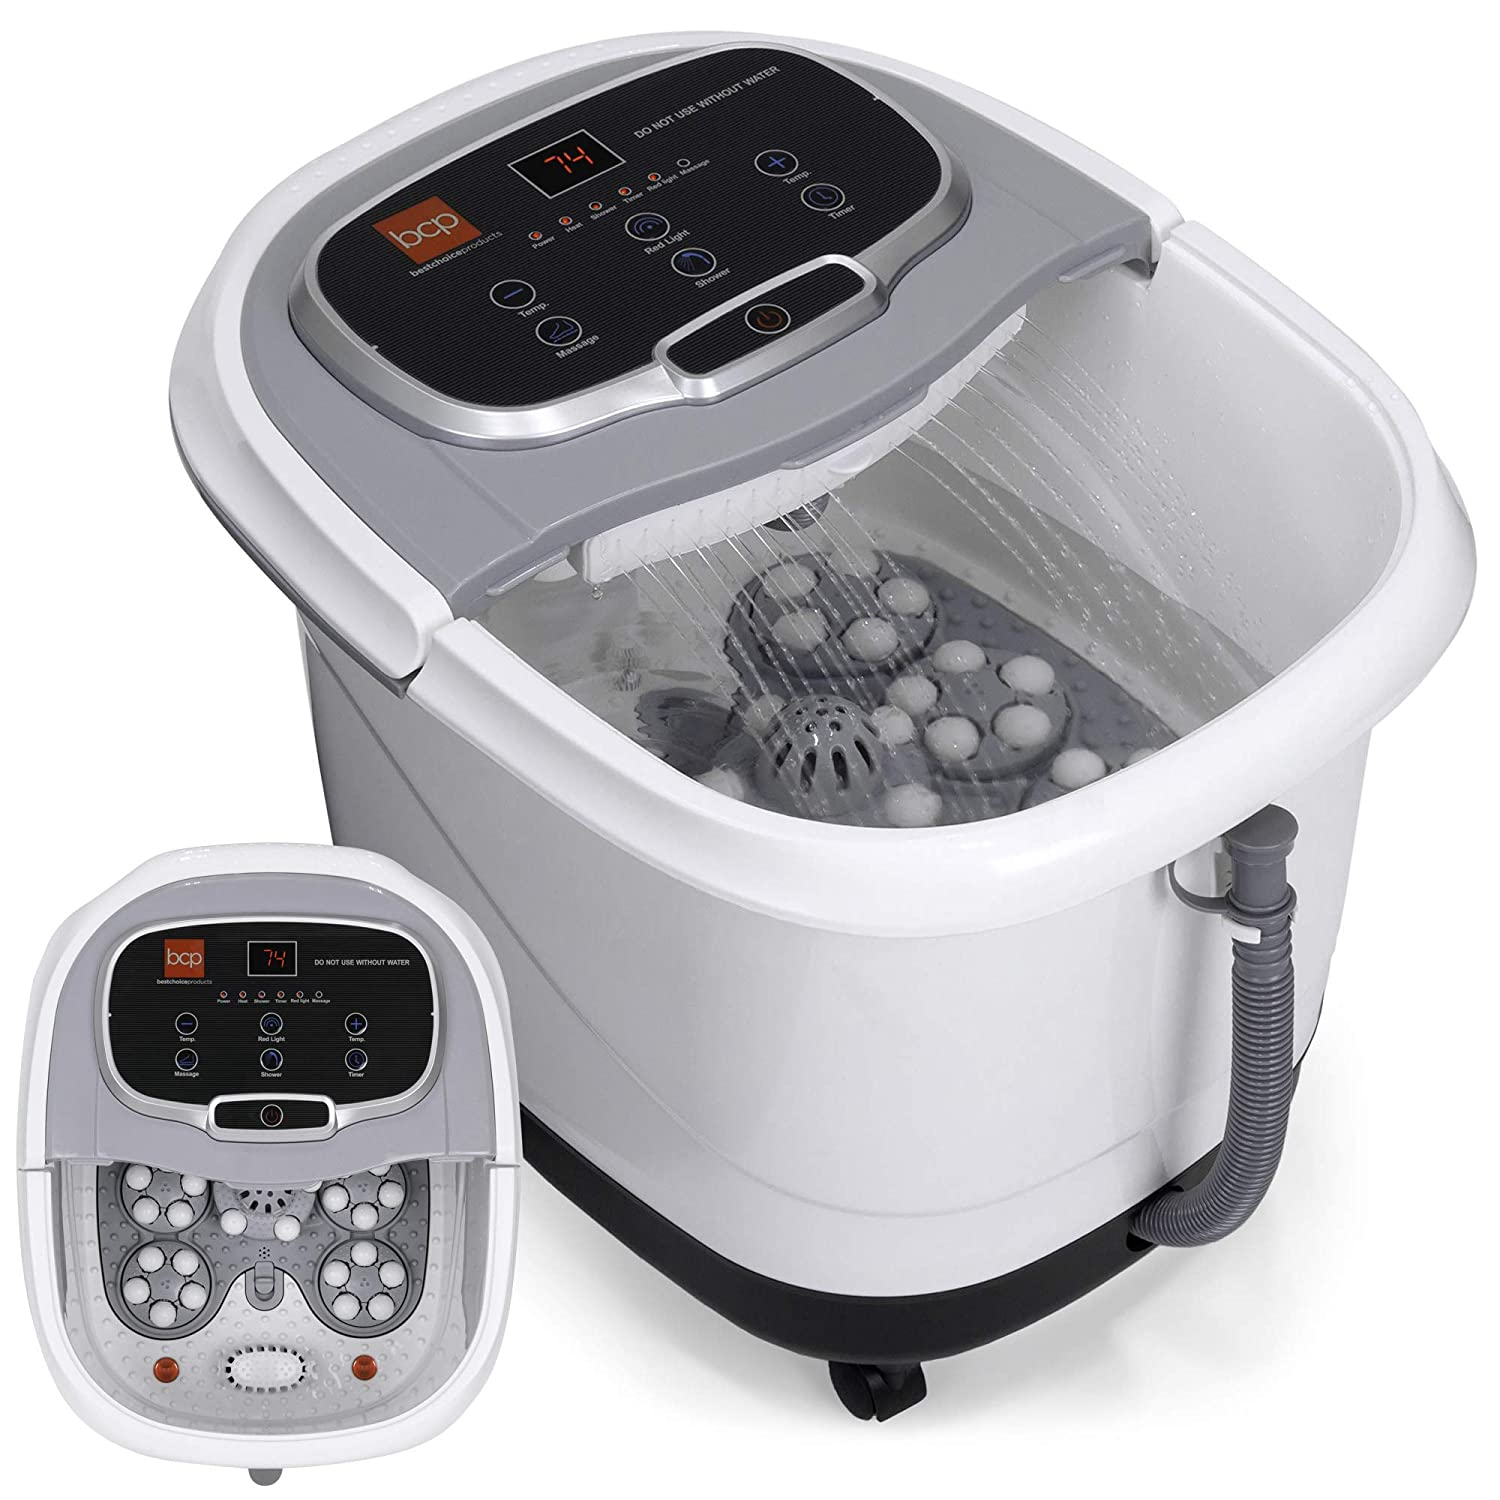 Best Choice Products Portable Heated Foot Bath Spa w/Shiatsu Auto Massage Rollers, Taiji Massage, Acupuncture Points, Temp Control, Timer, LED Screen, Drain Filter, Shower Function, Silver